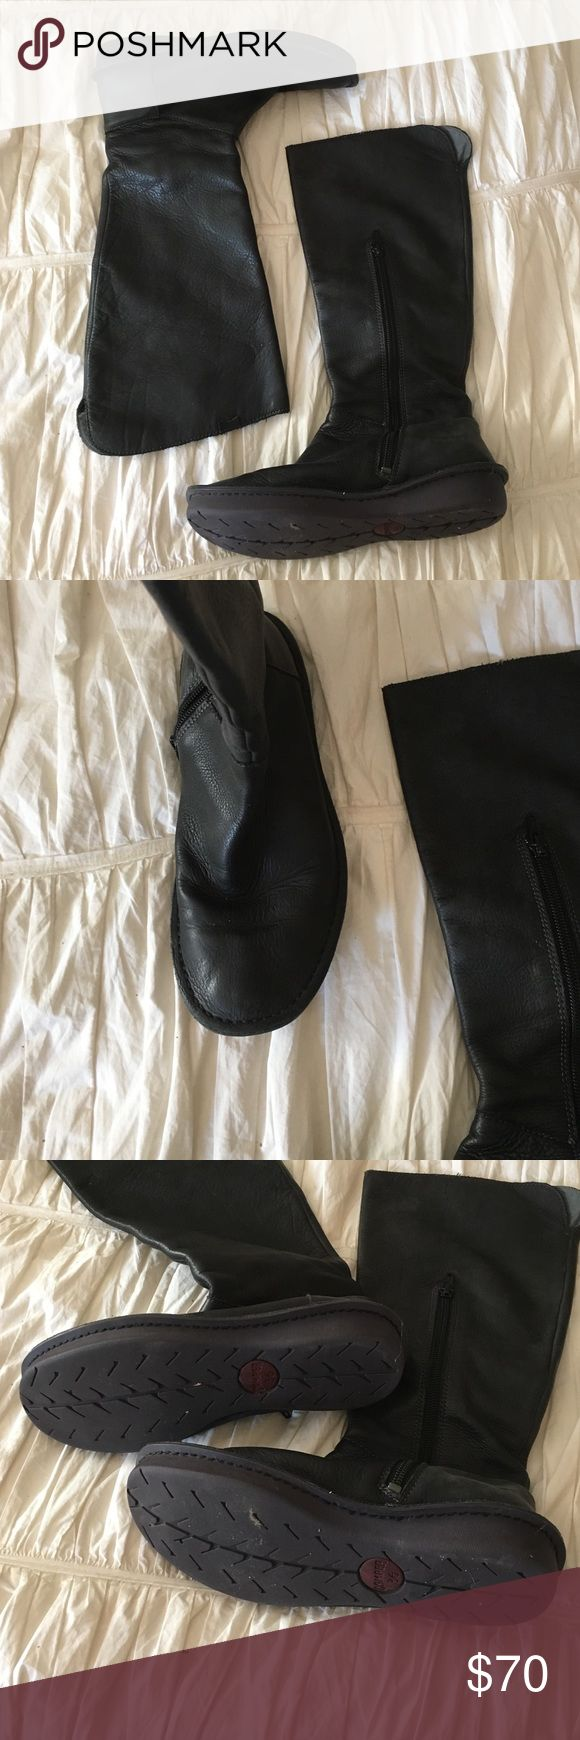 Camper boots Black soft leather riding style boots.  Comfy!  Used 9/10 condition Camper Shoes Winter & Rain Boots